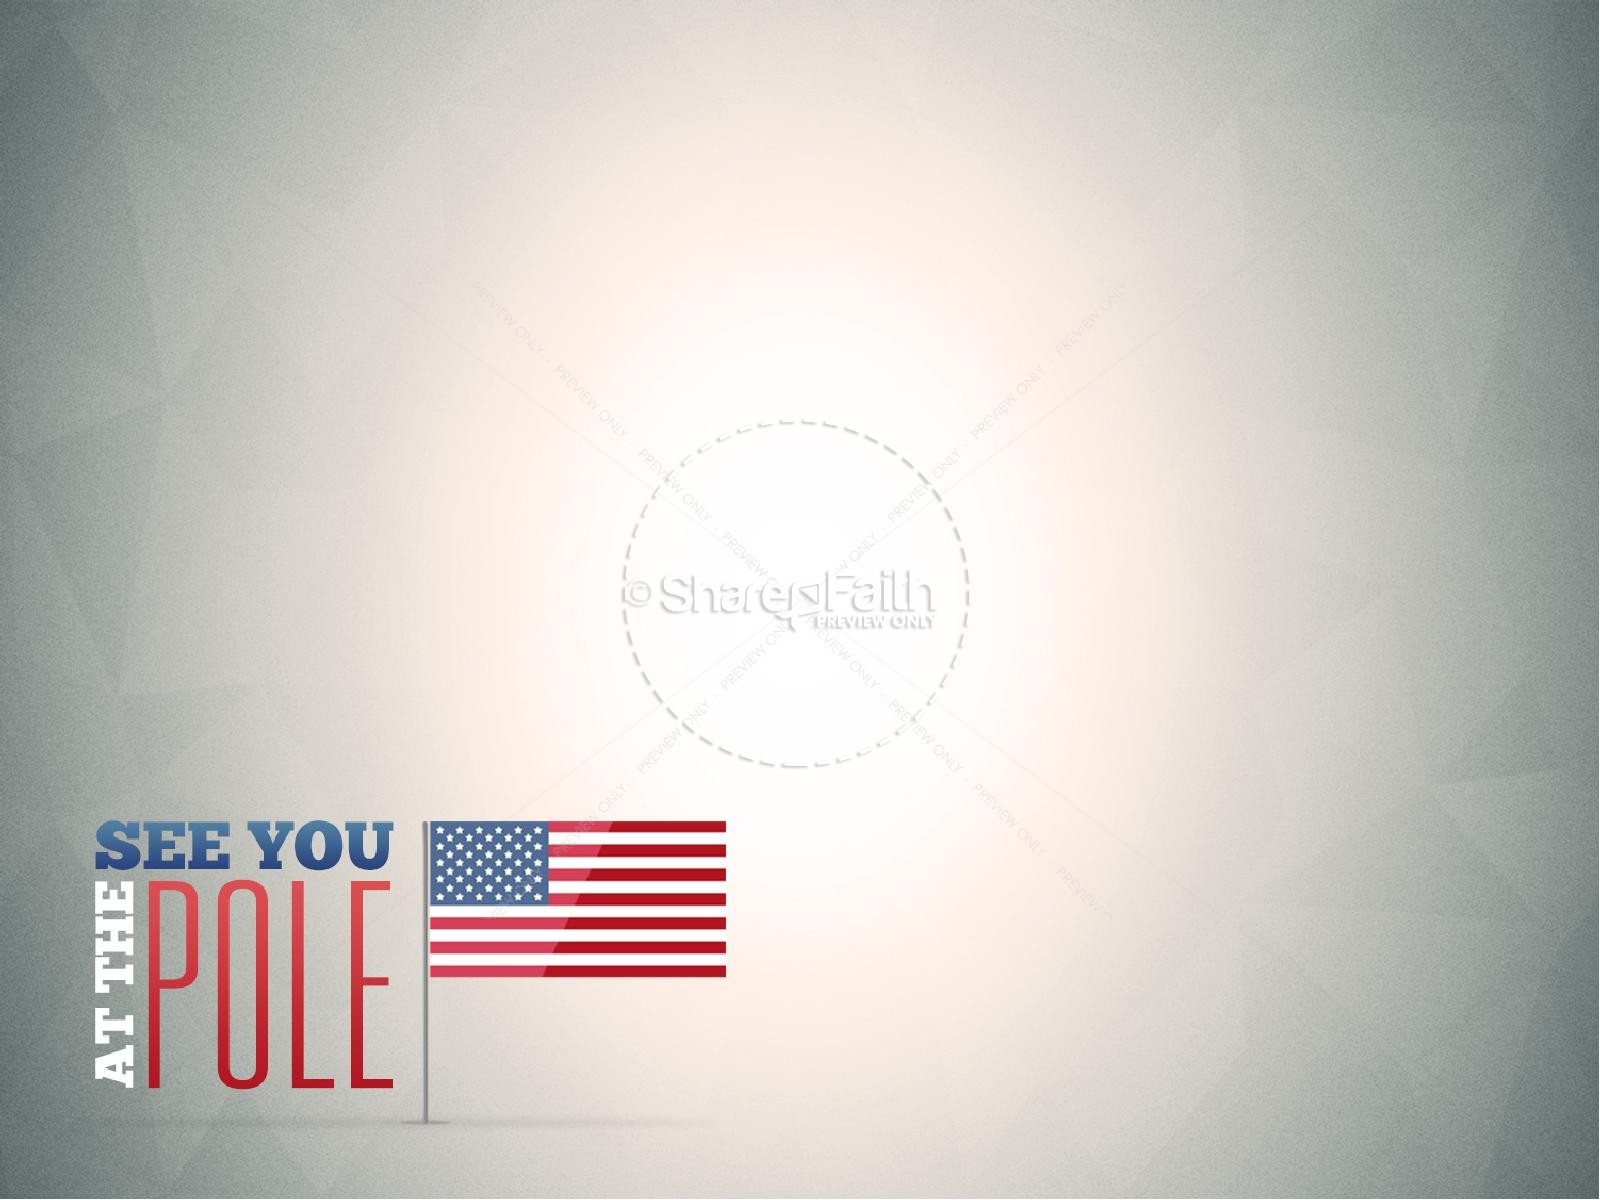 See you at the pole clipart banner transparent library See You at the Pole Christian PowerPoint | Back To School ... banner transparent library